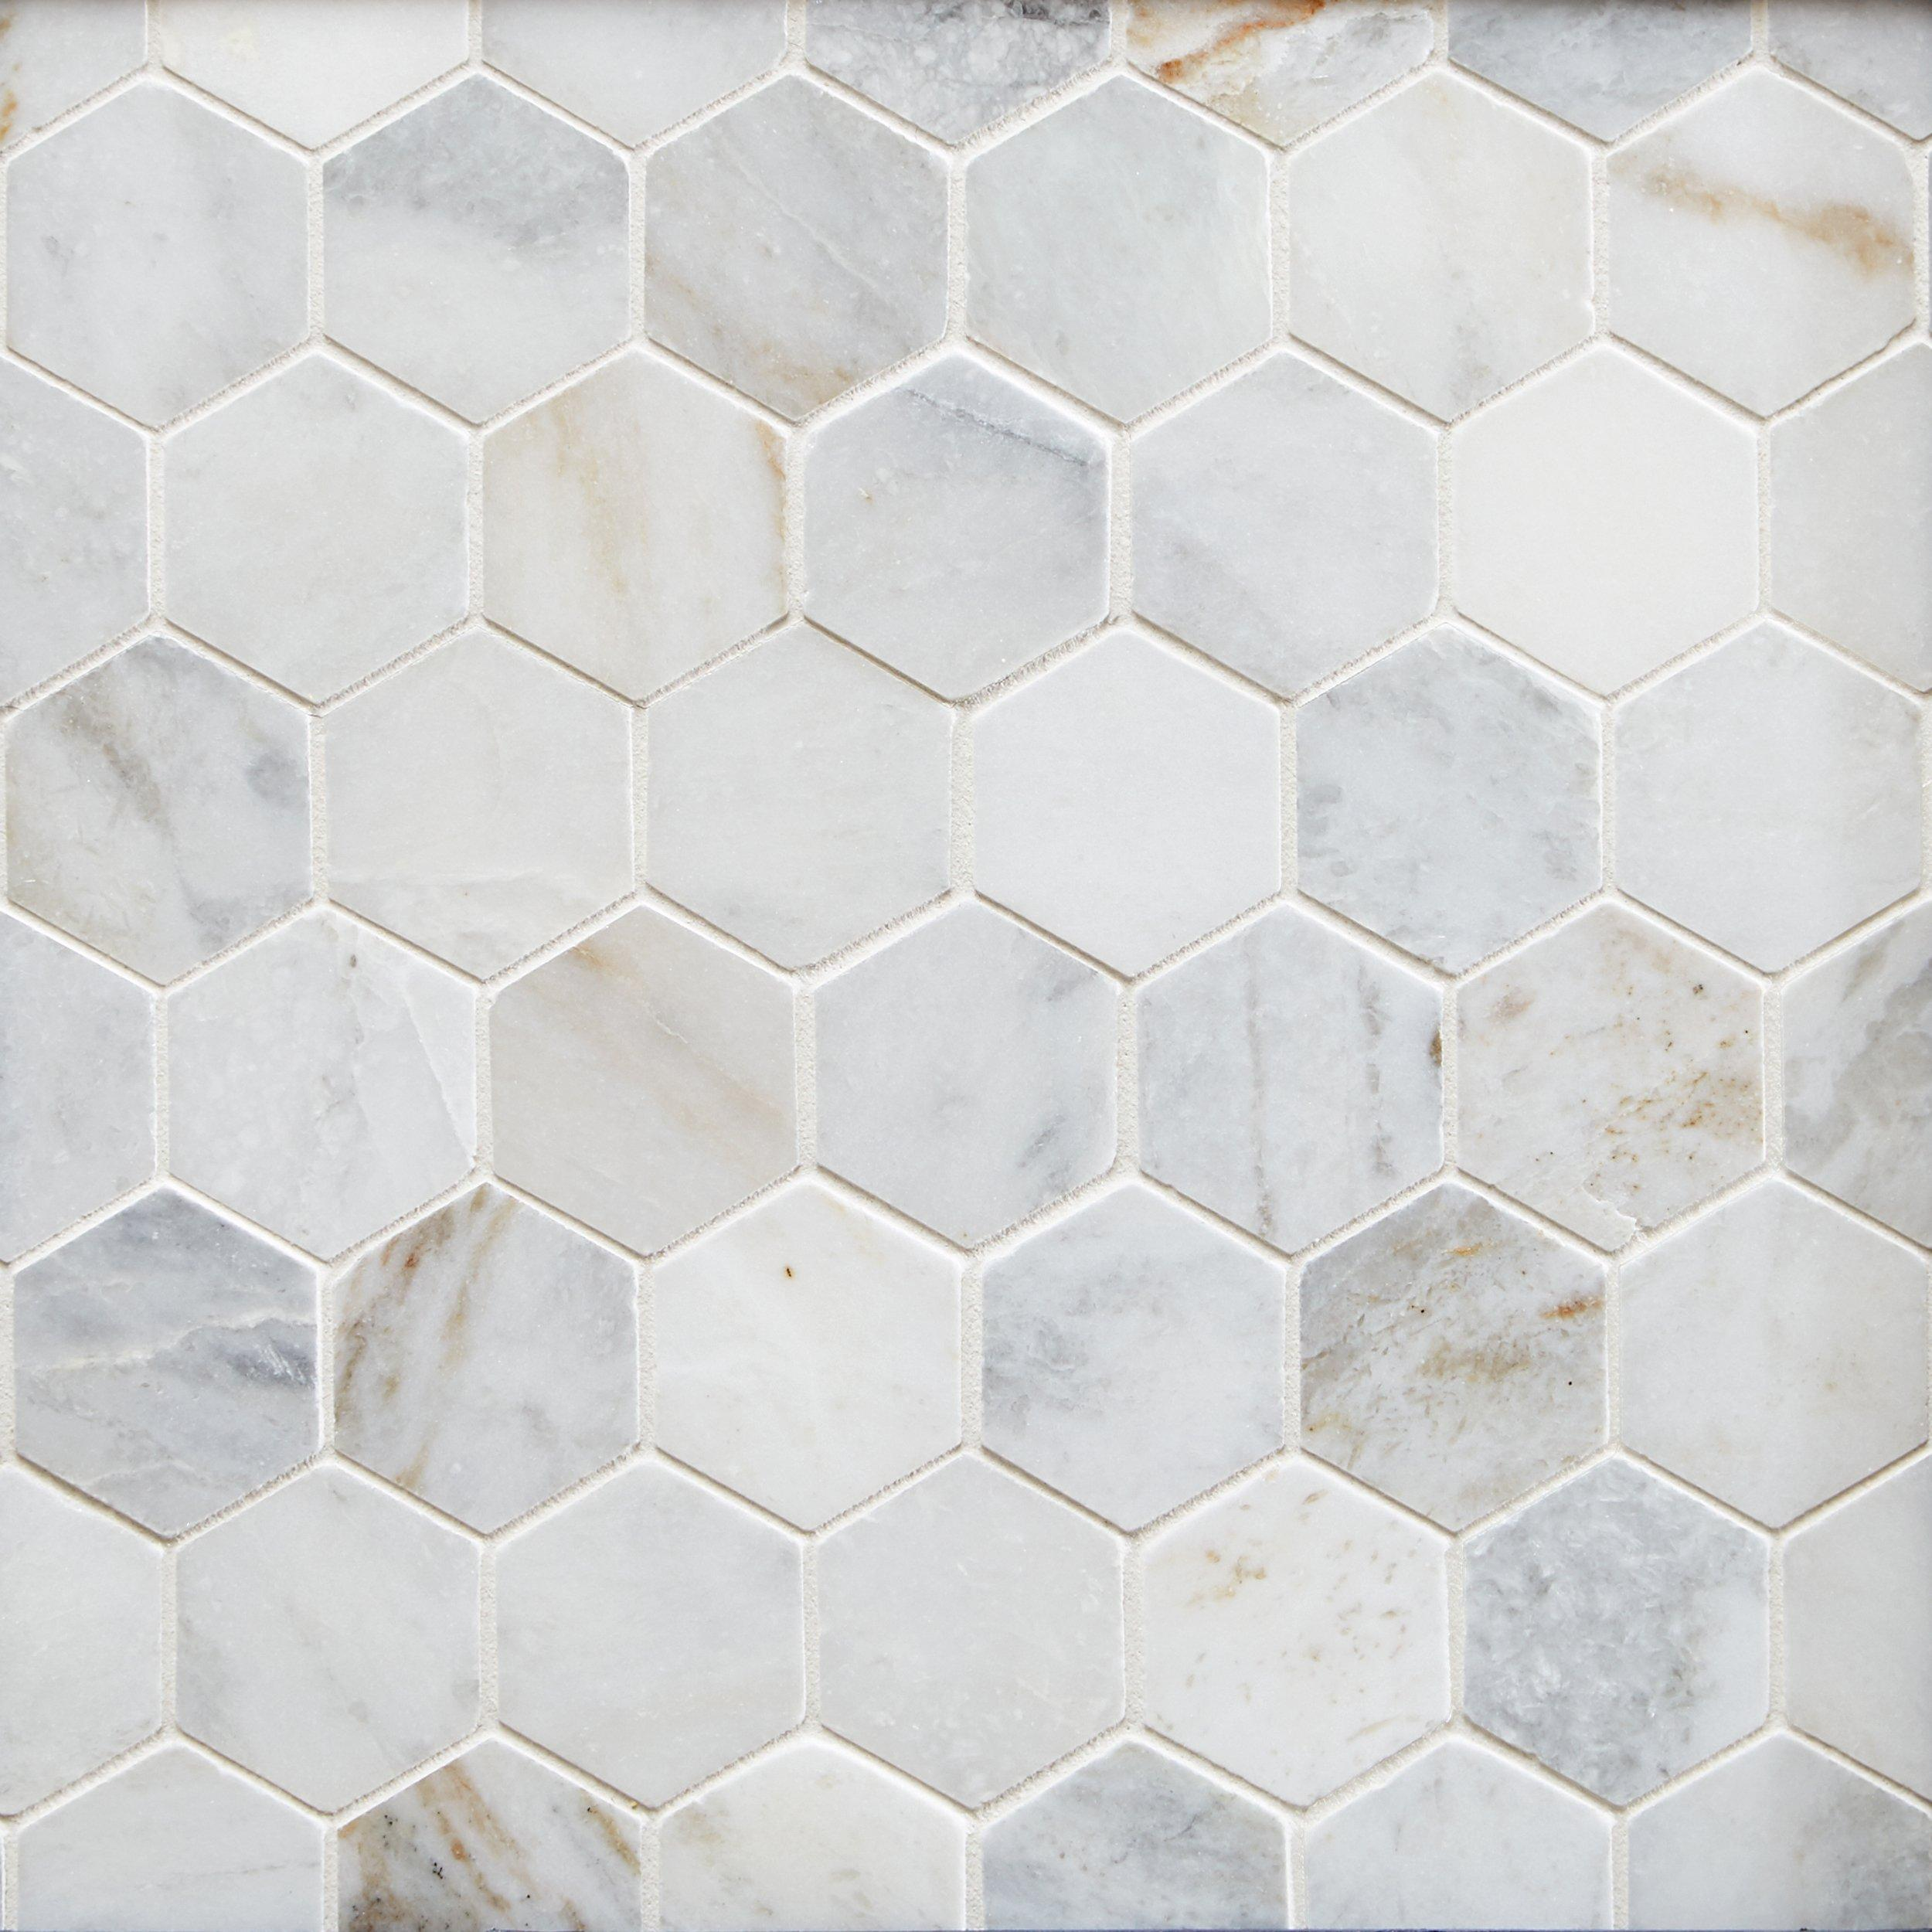 Marble flooring cheap about living room design subway tile plus fabulous bianco orion hexagon polished marble mosaic with marble flooring dailygadgetfo Gallery